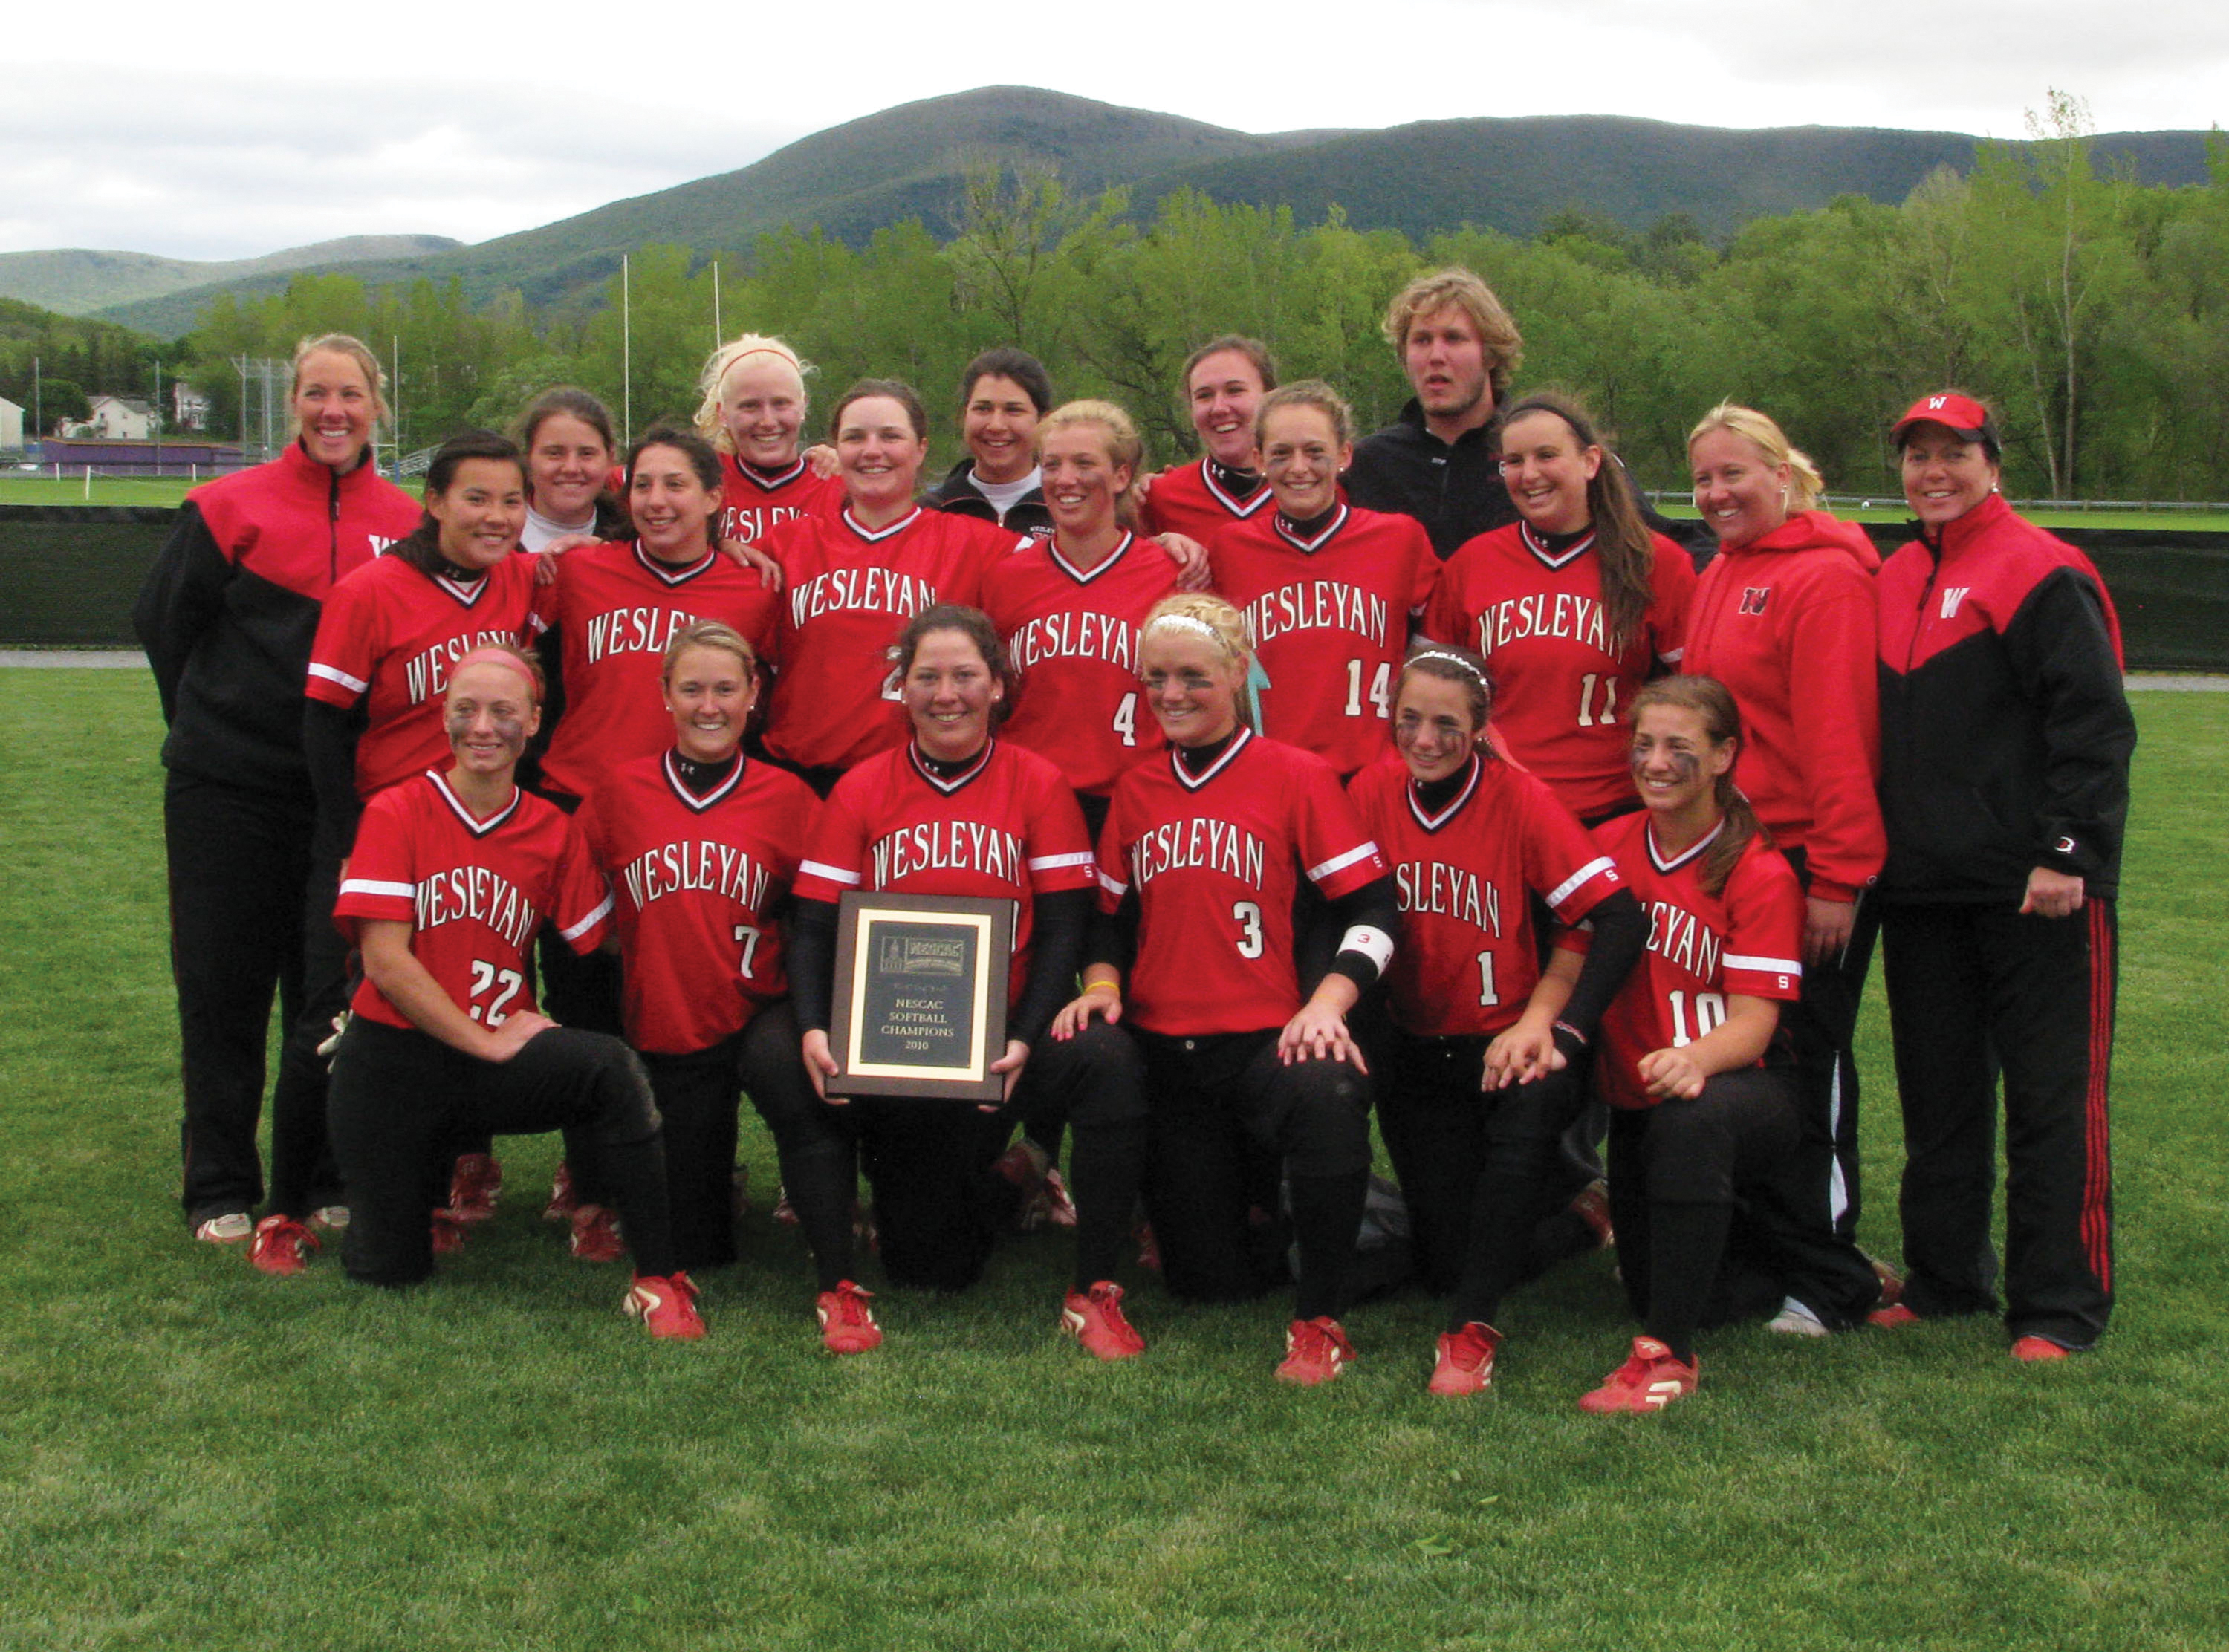 On the field at tournament host Williams College following their 10-1 triumph over Bowdoin, the 2010 Wesleyan softball team celebrated its NESCAC title by proudly displaying the championship plaque.